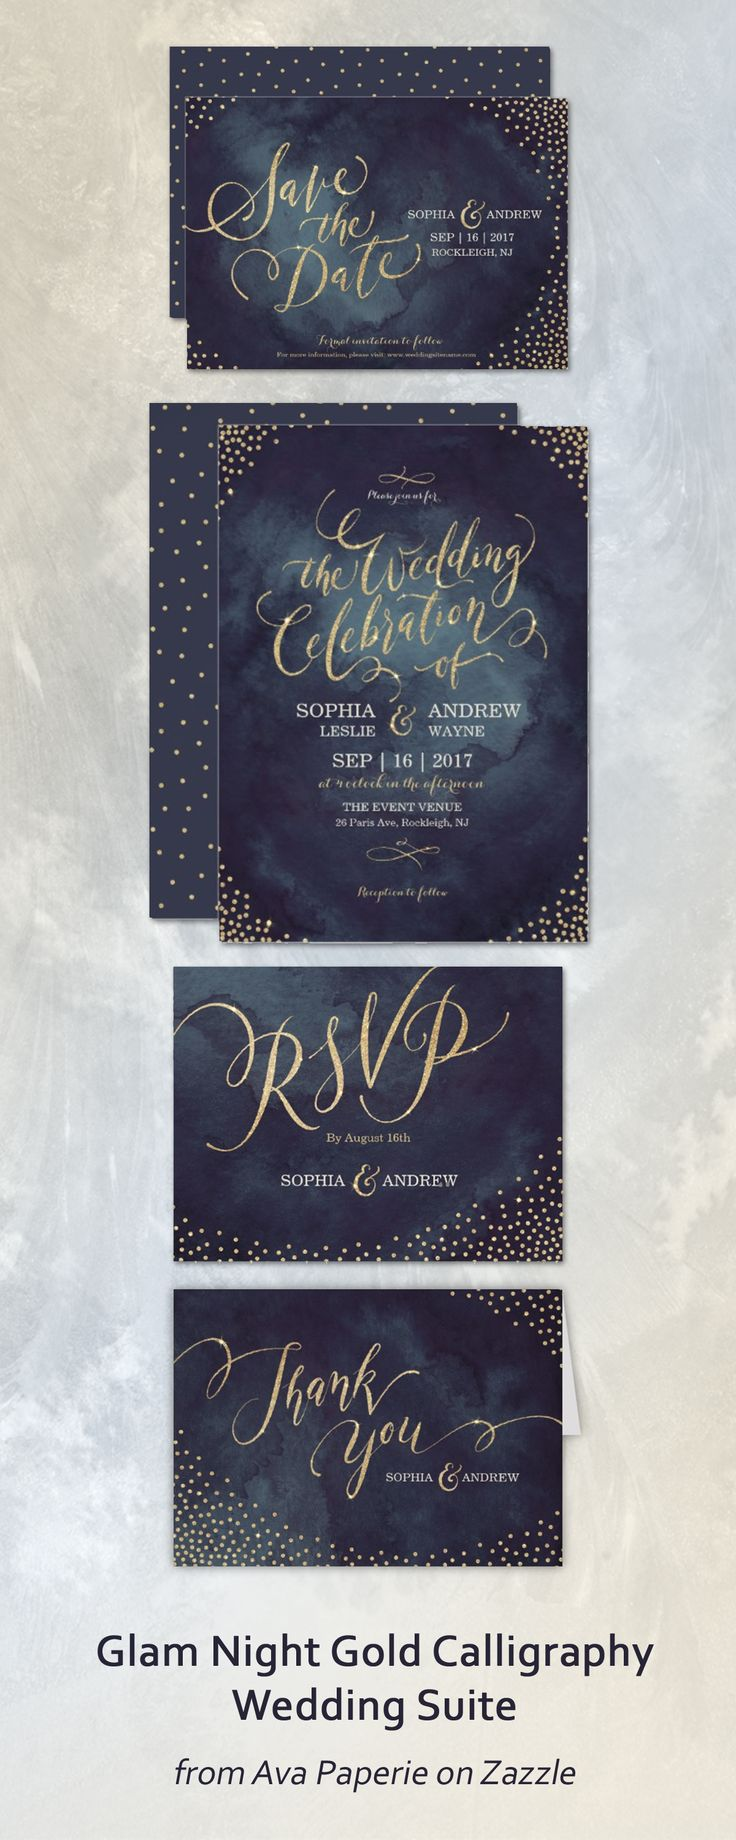 nautical wedding invitations uk%0A Chic navy nighttime wedding invitation suite featuring gold hand lettering  calligraphy design and gold confetti dots